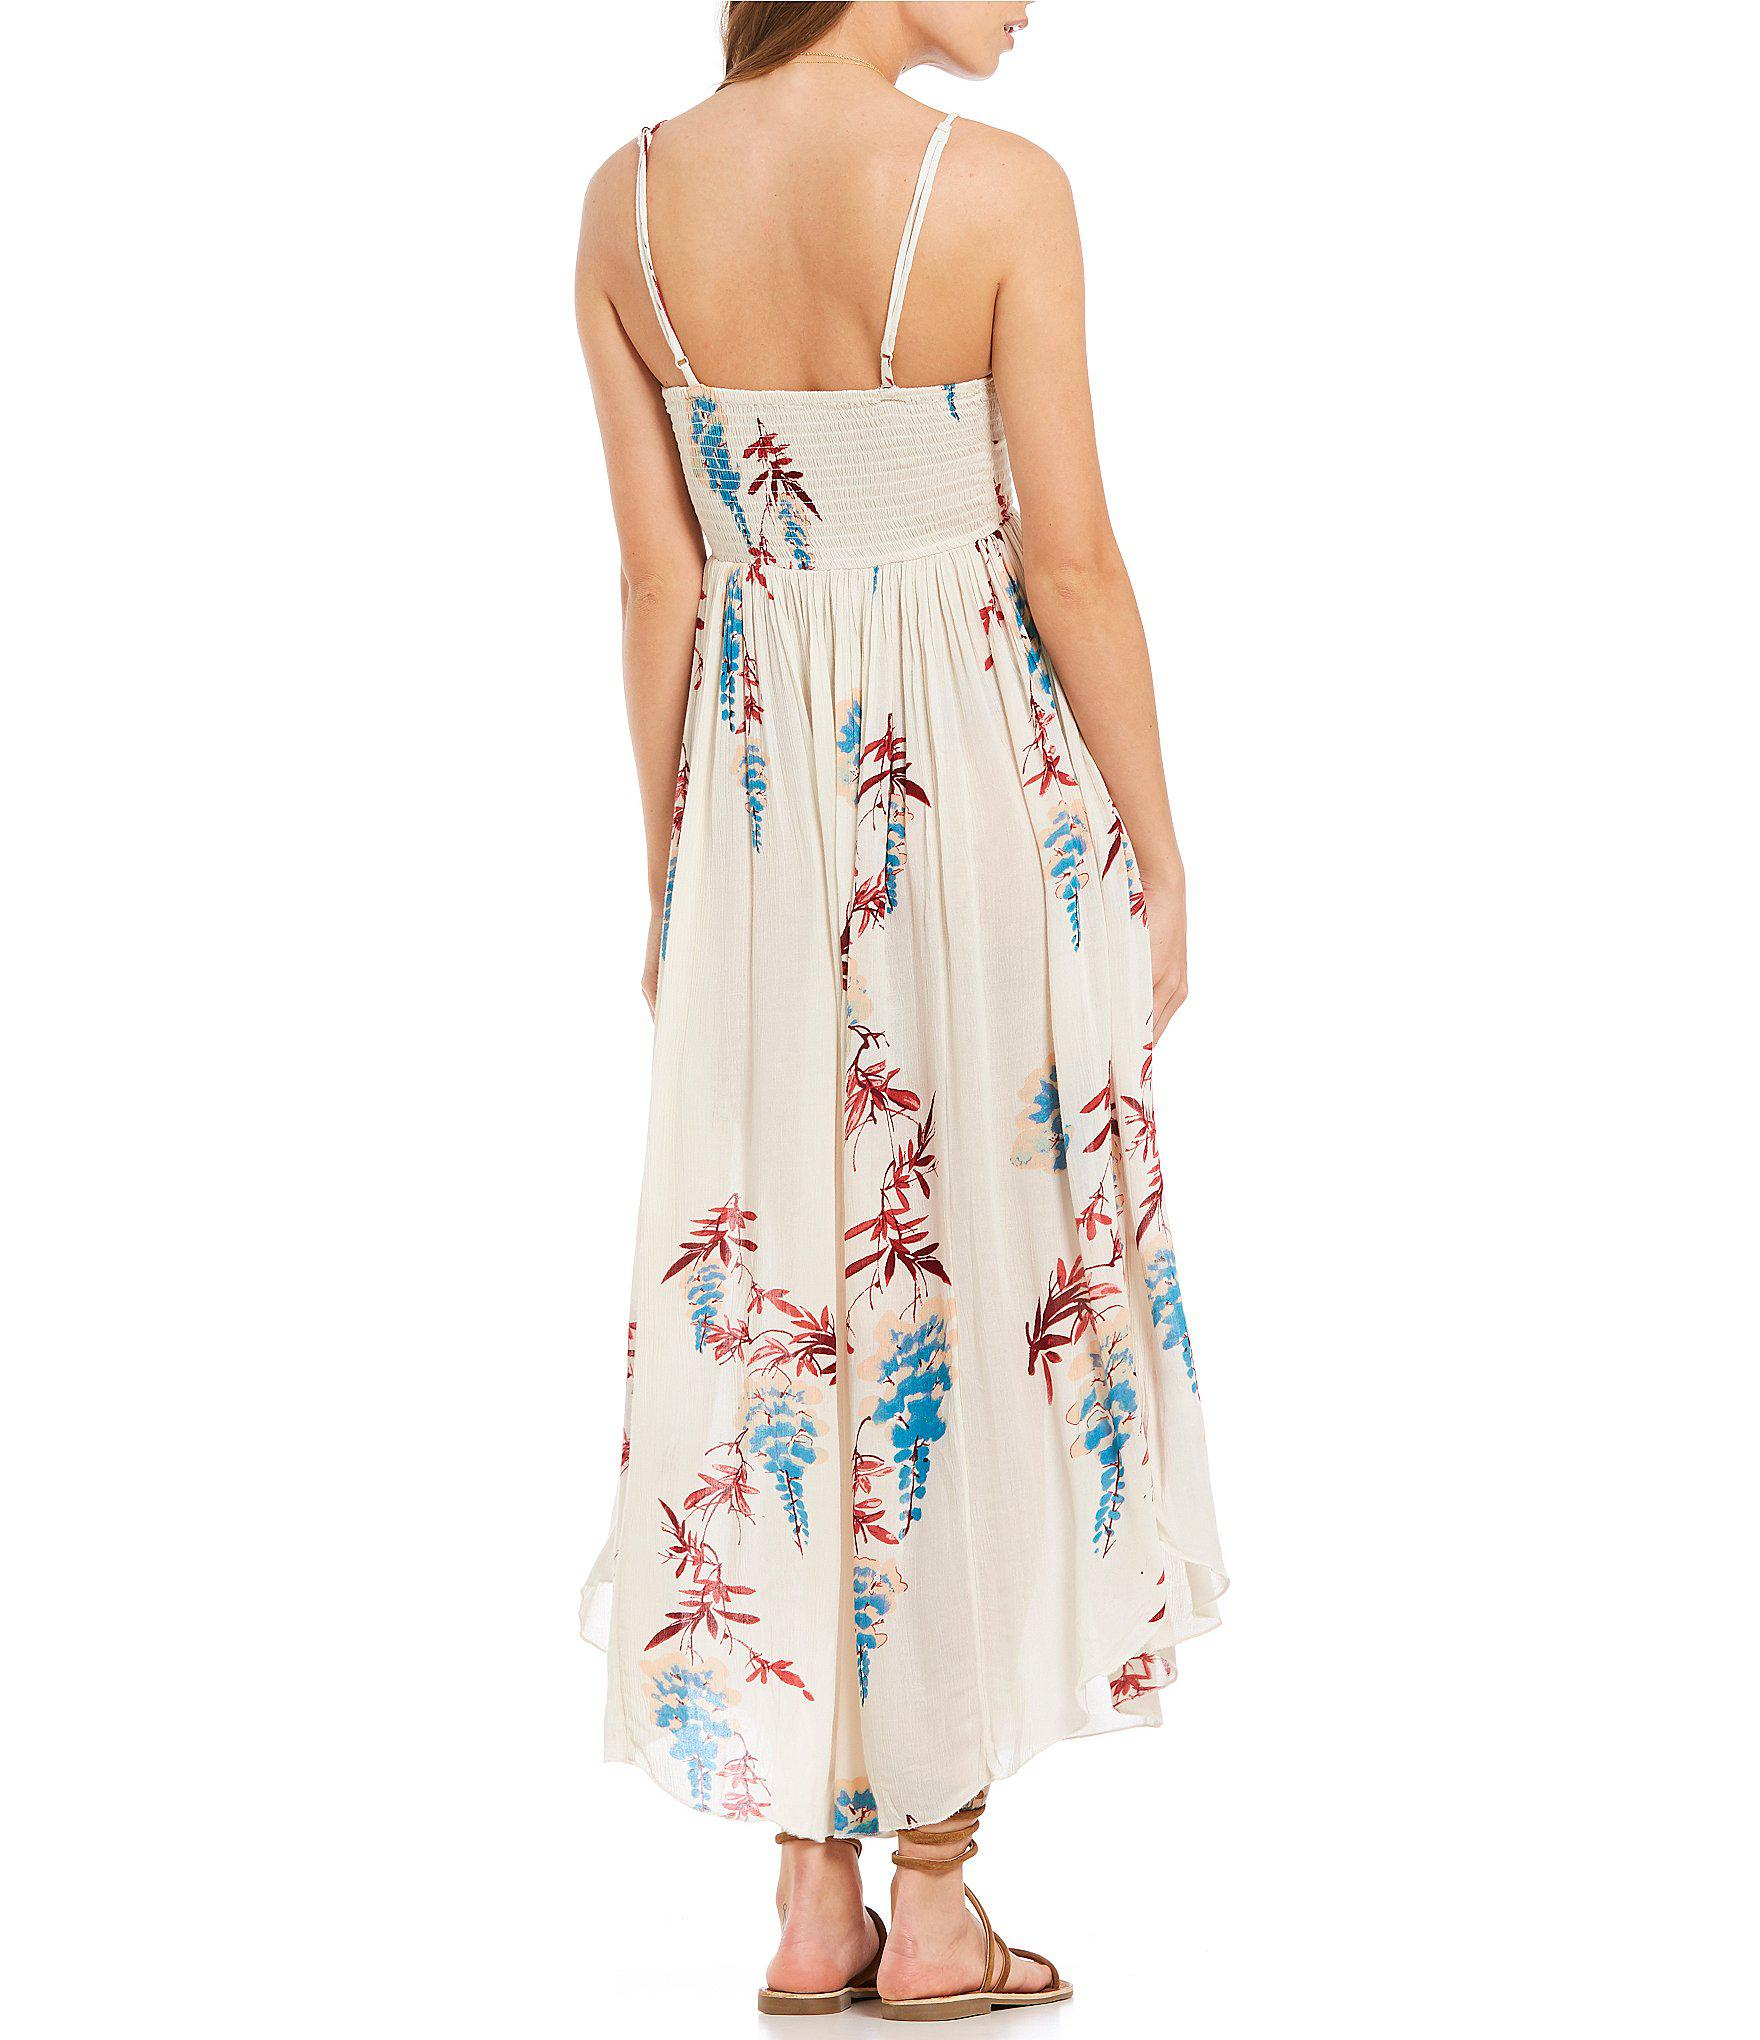 18ff3034a5be Free People Beau Smocked Floral Print Slip Maxi Dress in White - Lyst